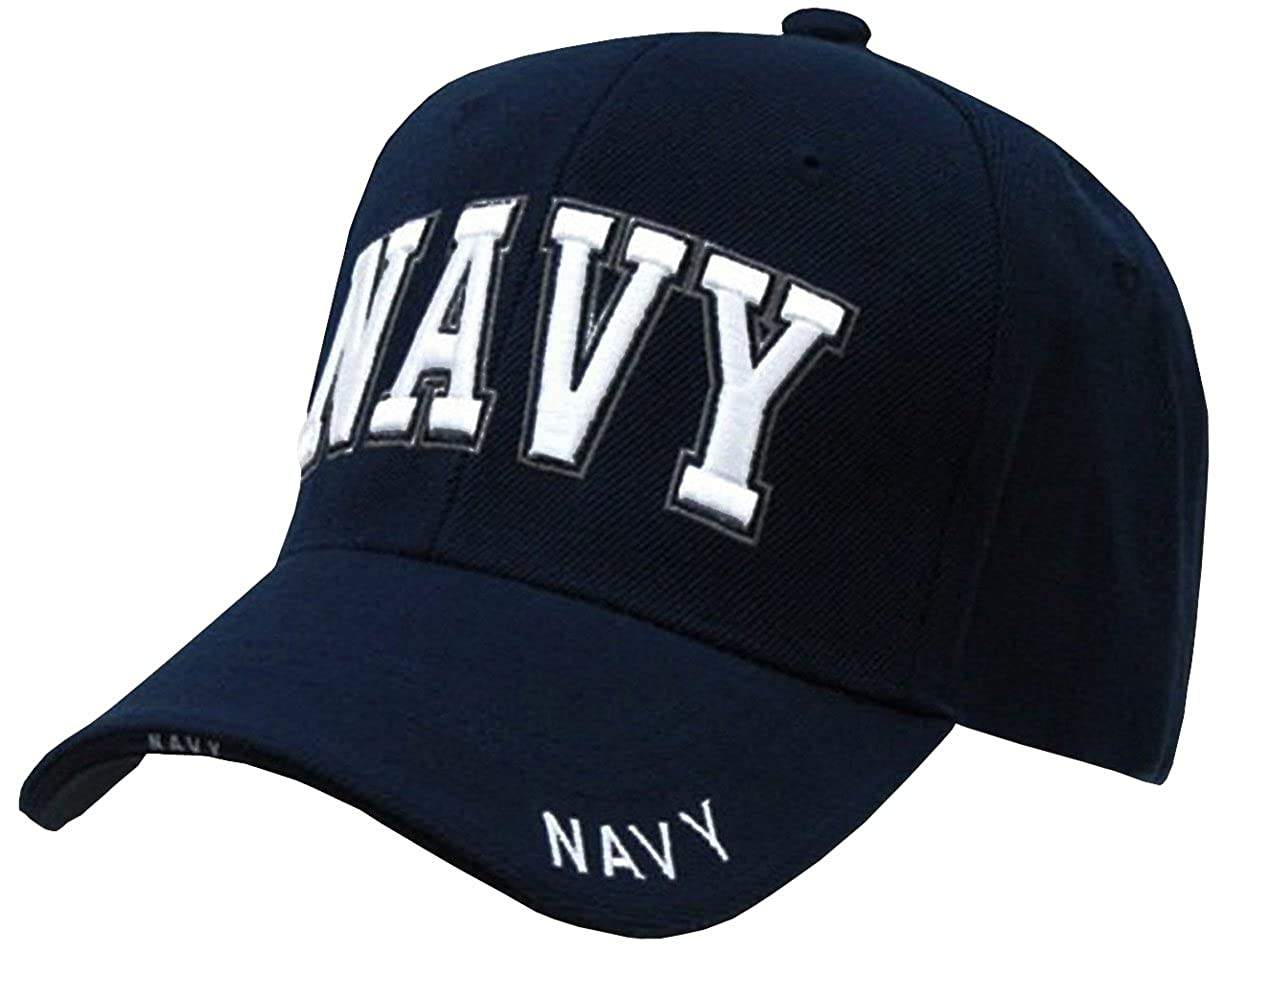 6dcd0a469 Rapid Dominance US Navy Text Embroidered High Crown Military Baseball Cap  Hat